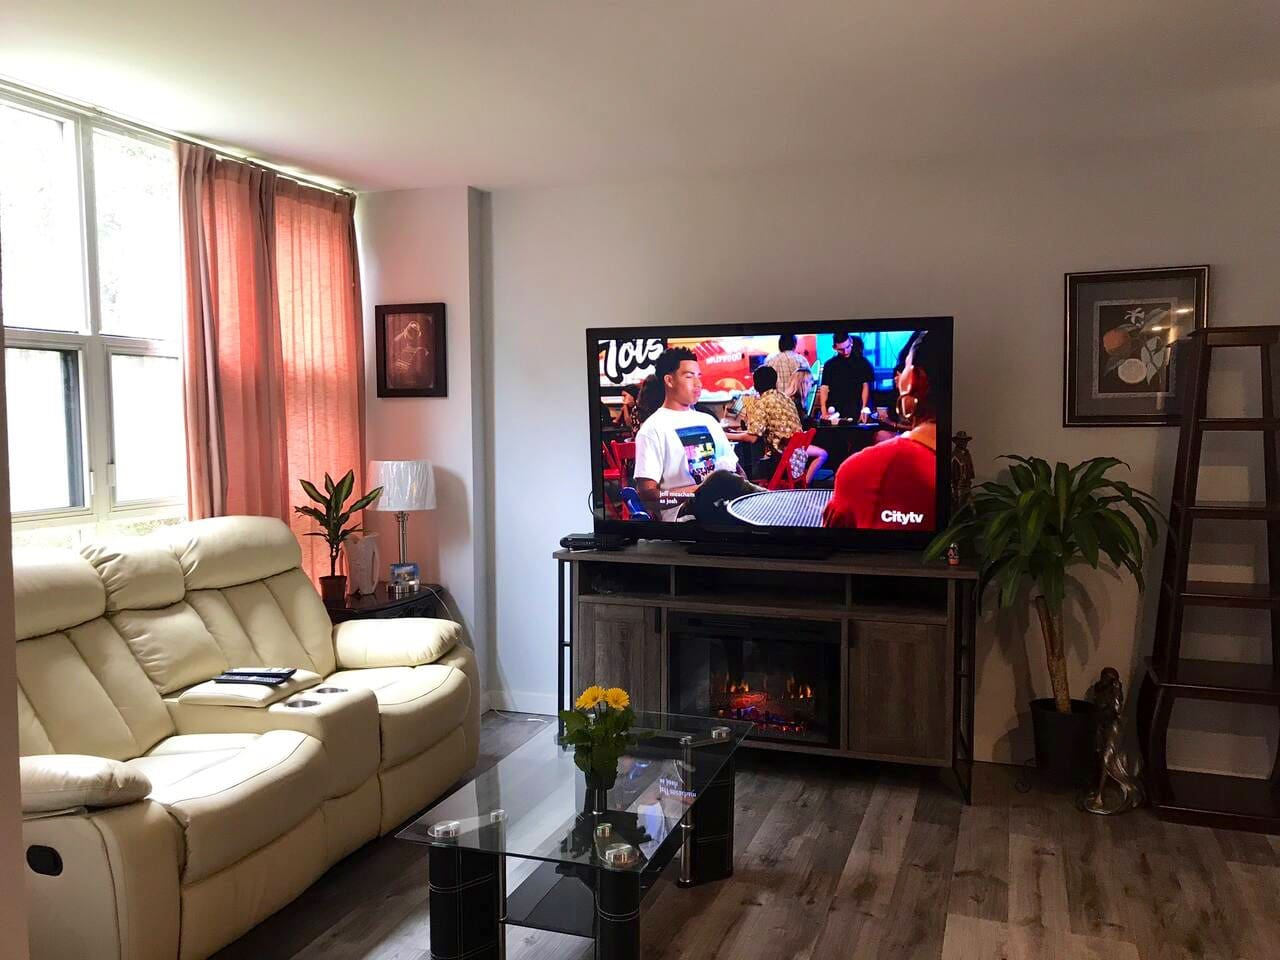 60 inch Smart TV, indoor fireplace with 2 reclining sofa (coach) in living room